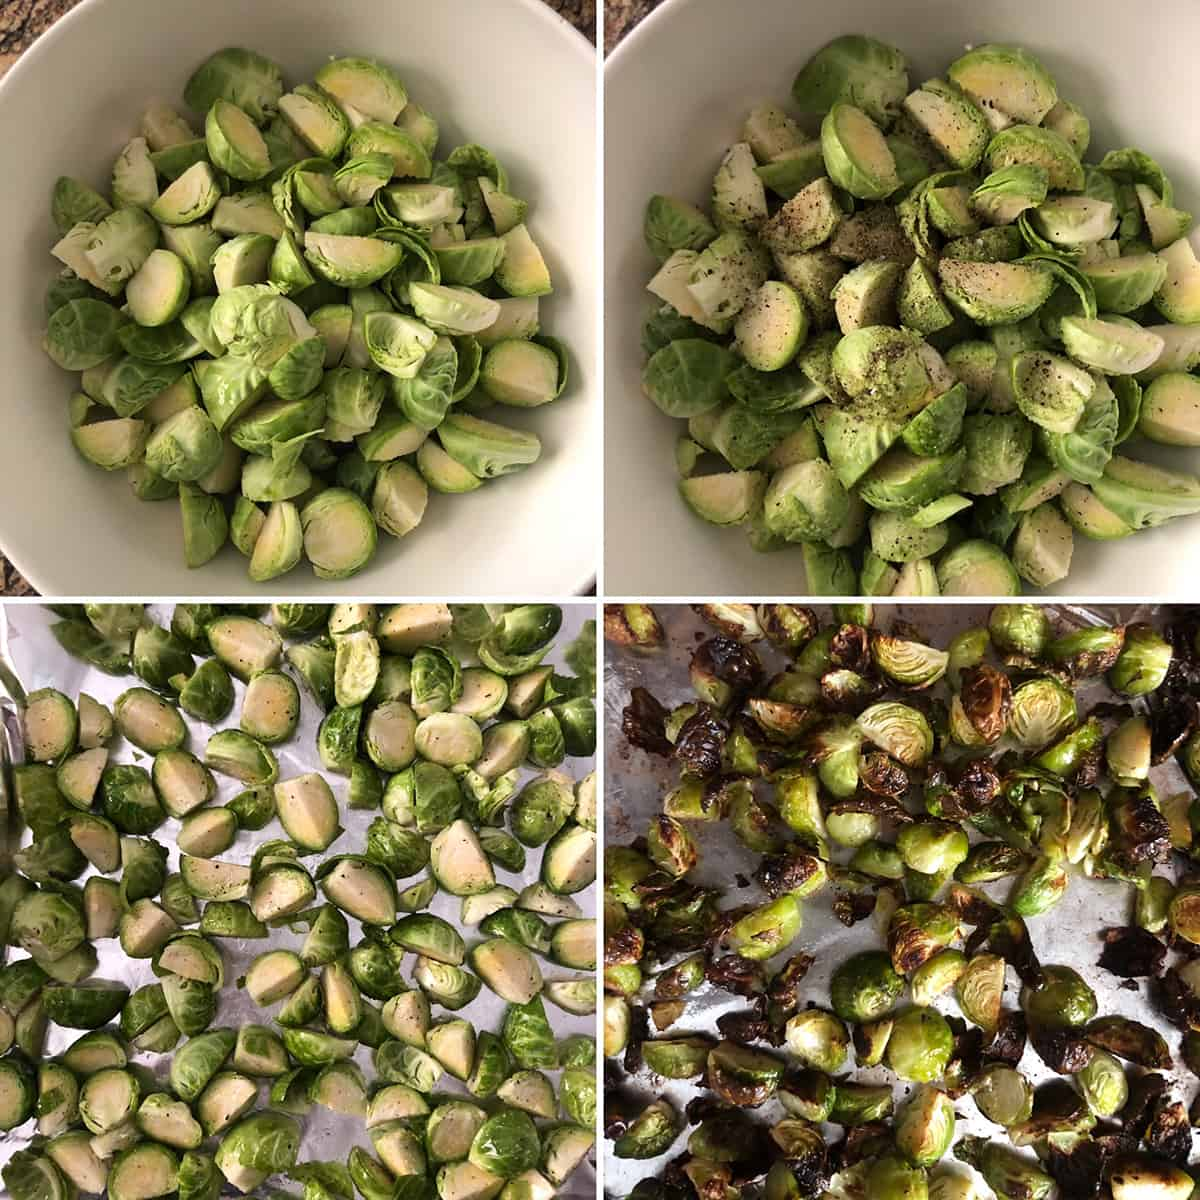 Trimmed prepped sprouts before and after roasting